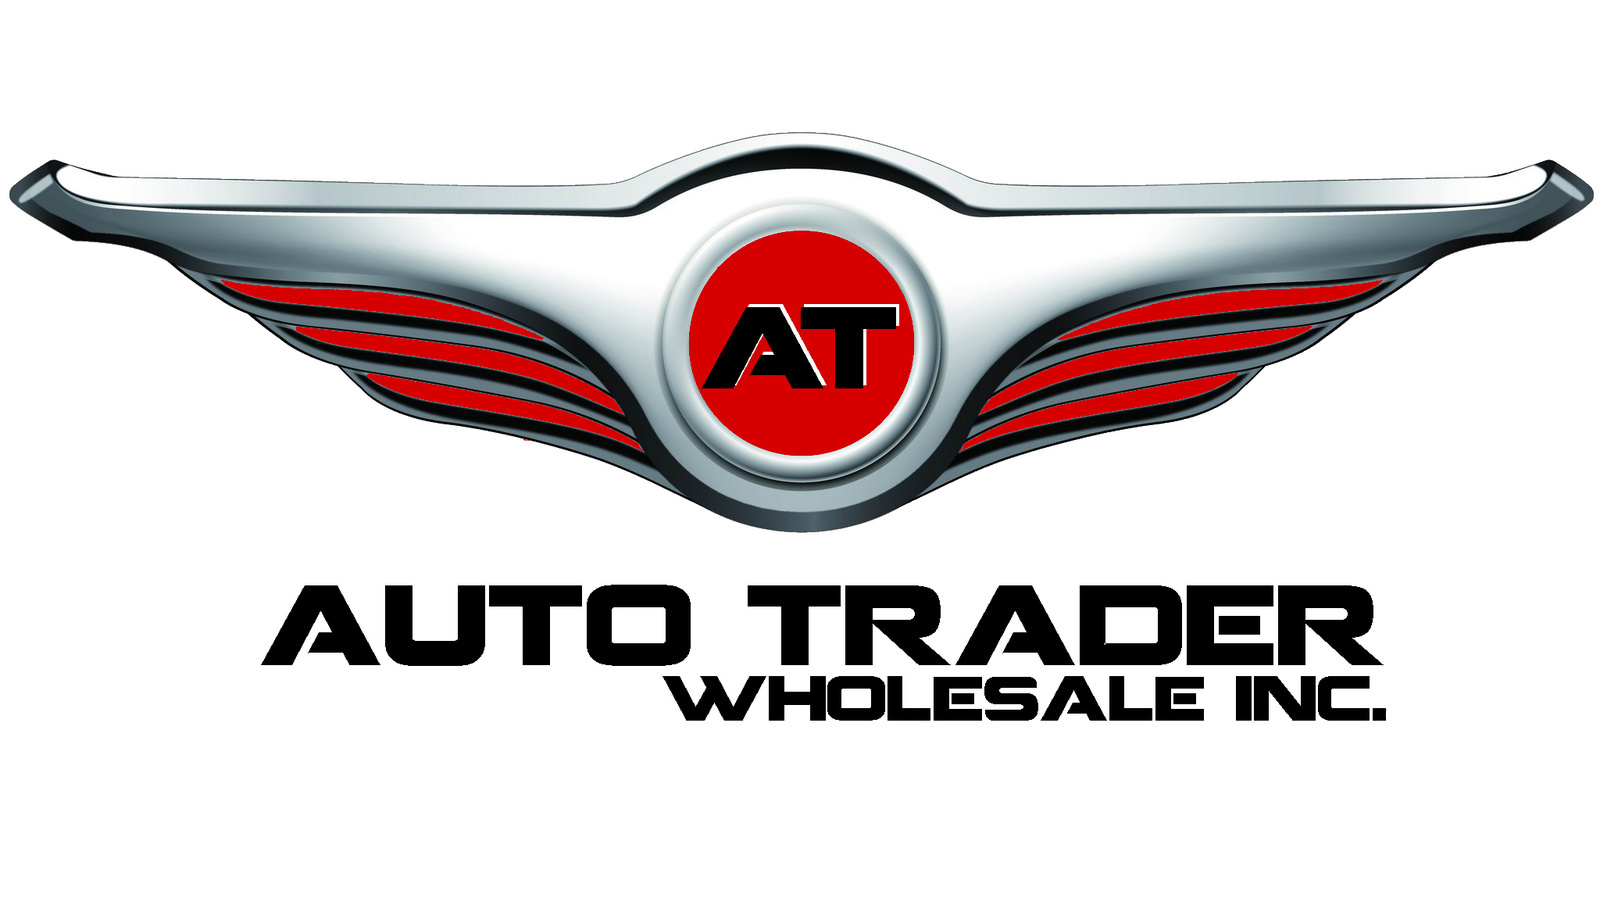 Auto Trader Wholesale - Saddle Brook, NJ: Read Consumer reviews ...